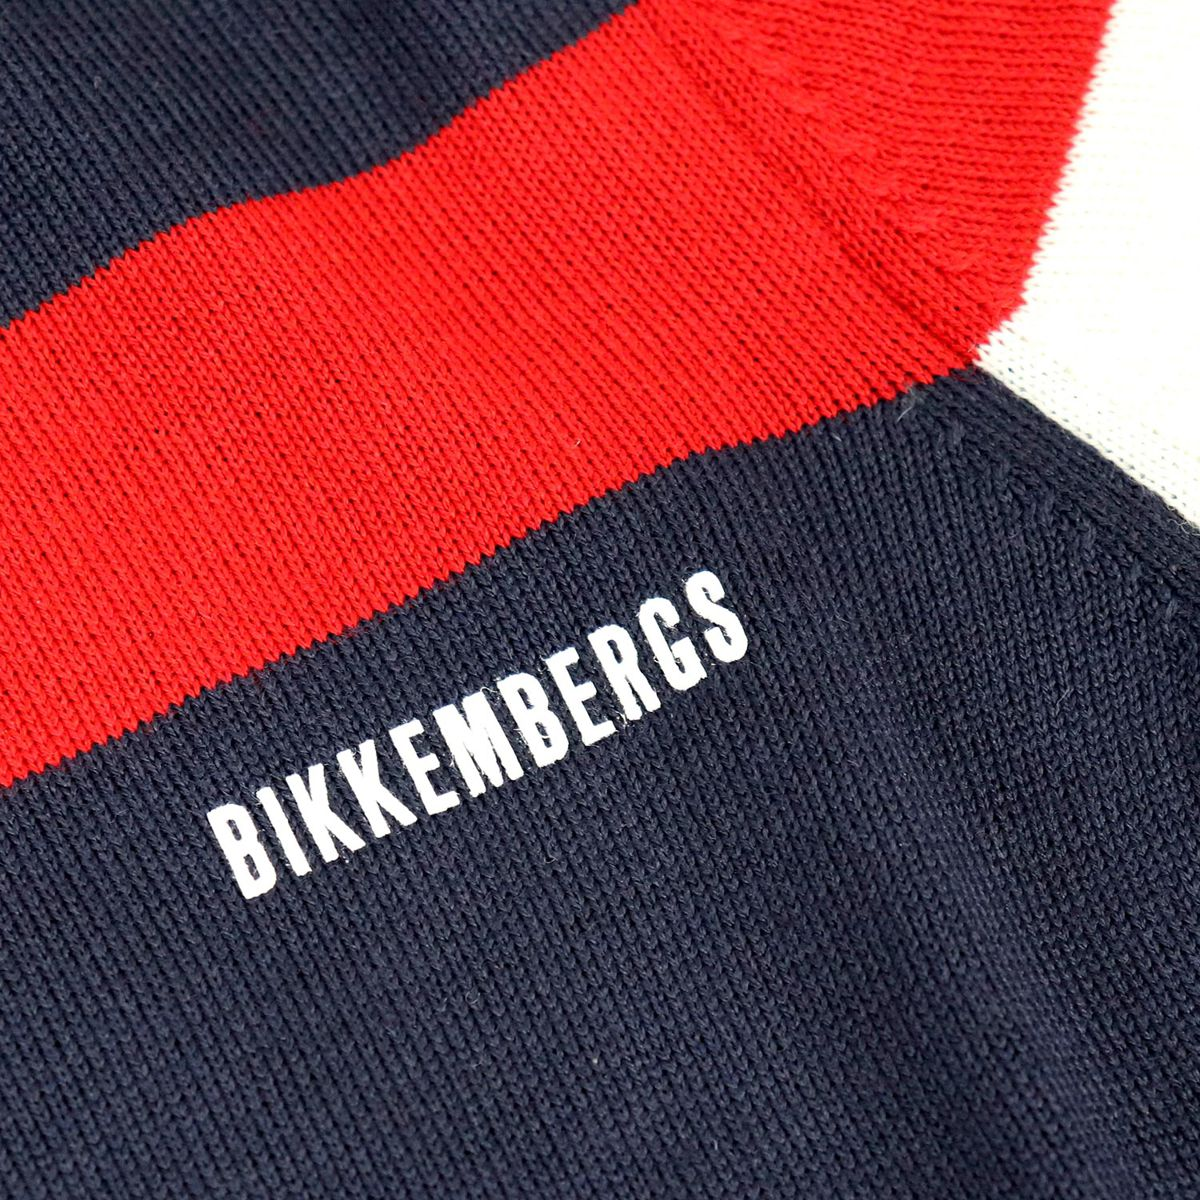 Wool blend pullover with logo and contrasting stripes Blue Bikkembergs